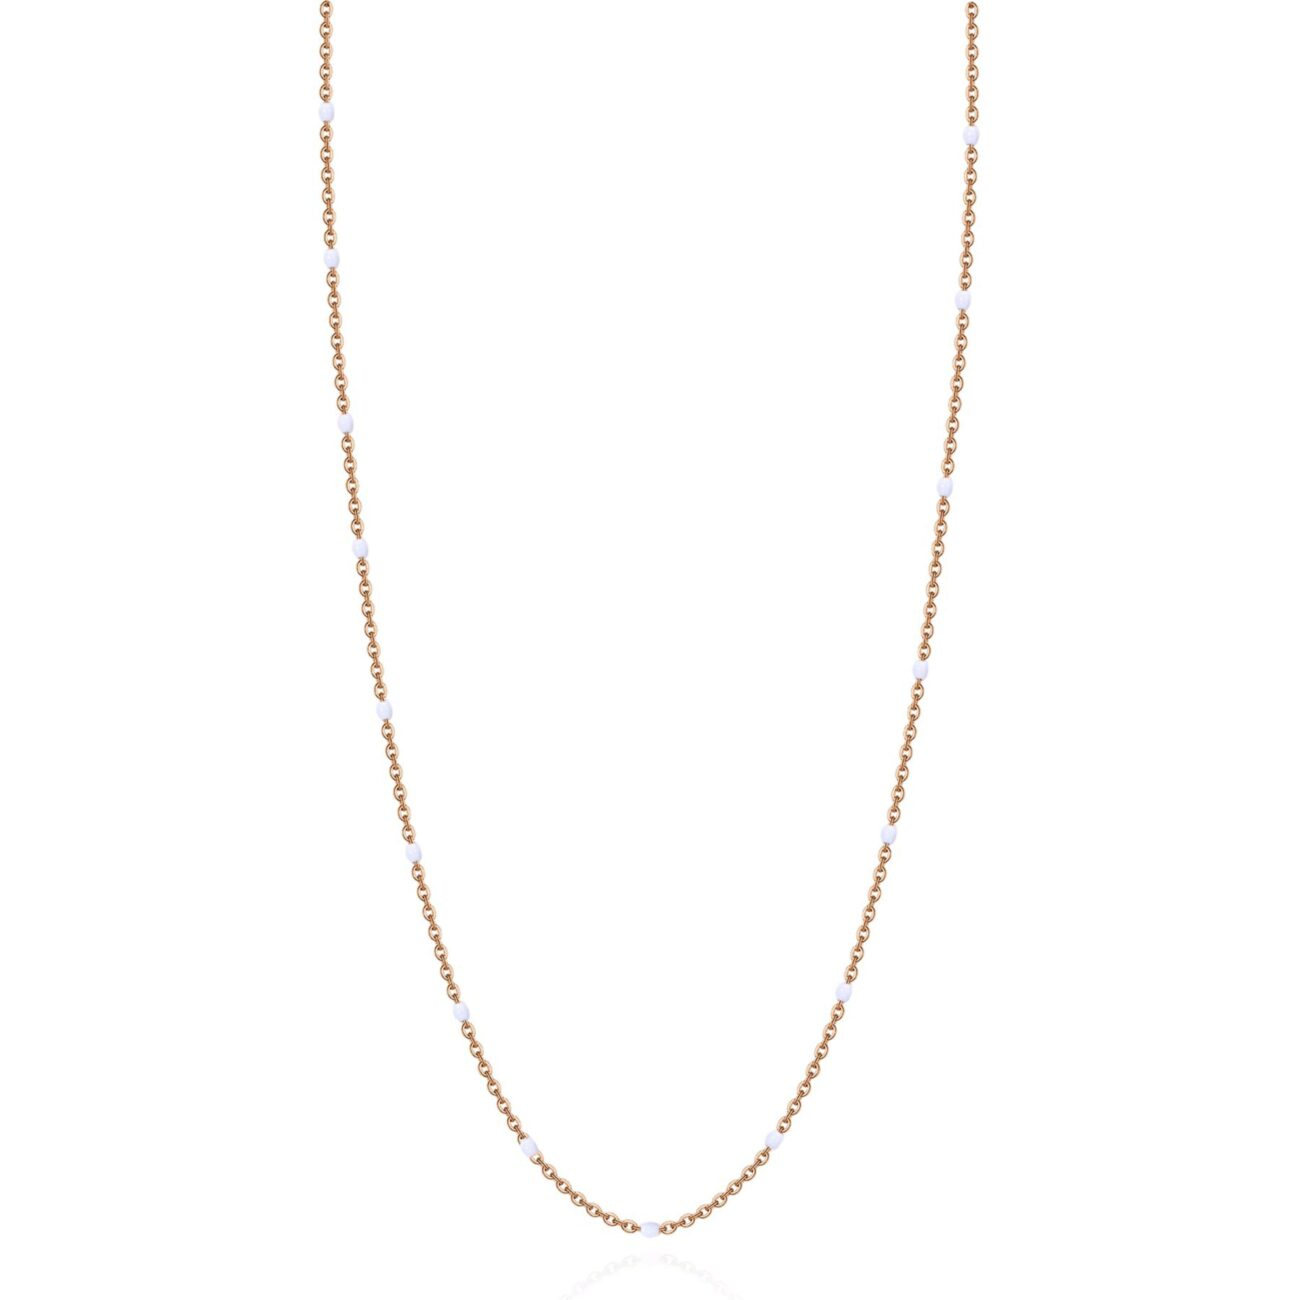 316L stainless steel necklace, rose gold finishes and white enamel.